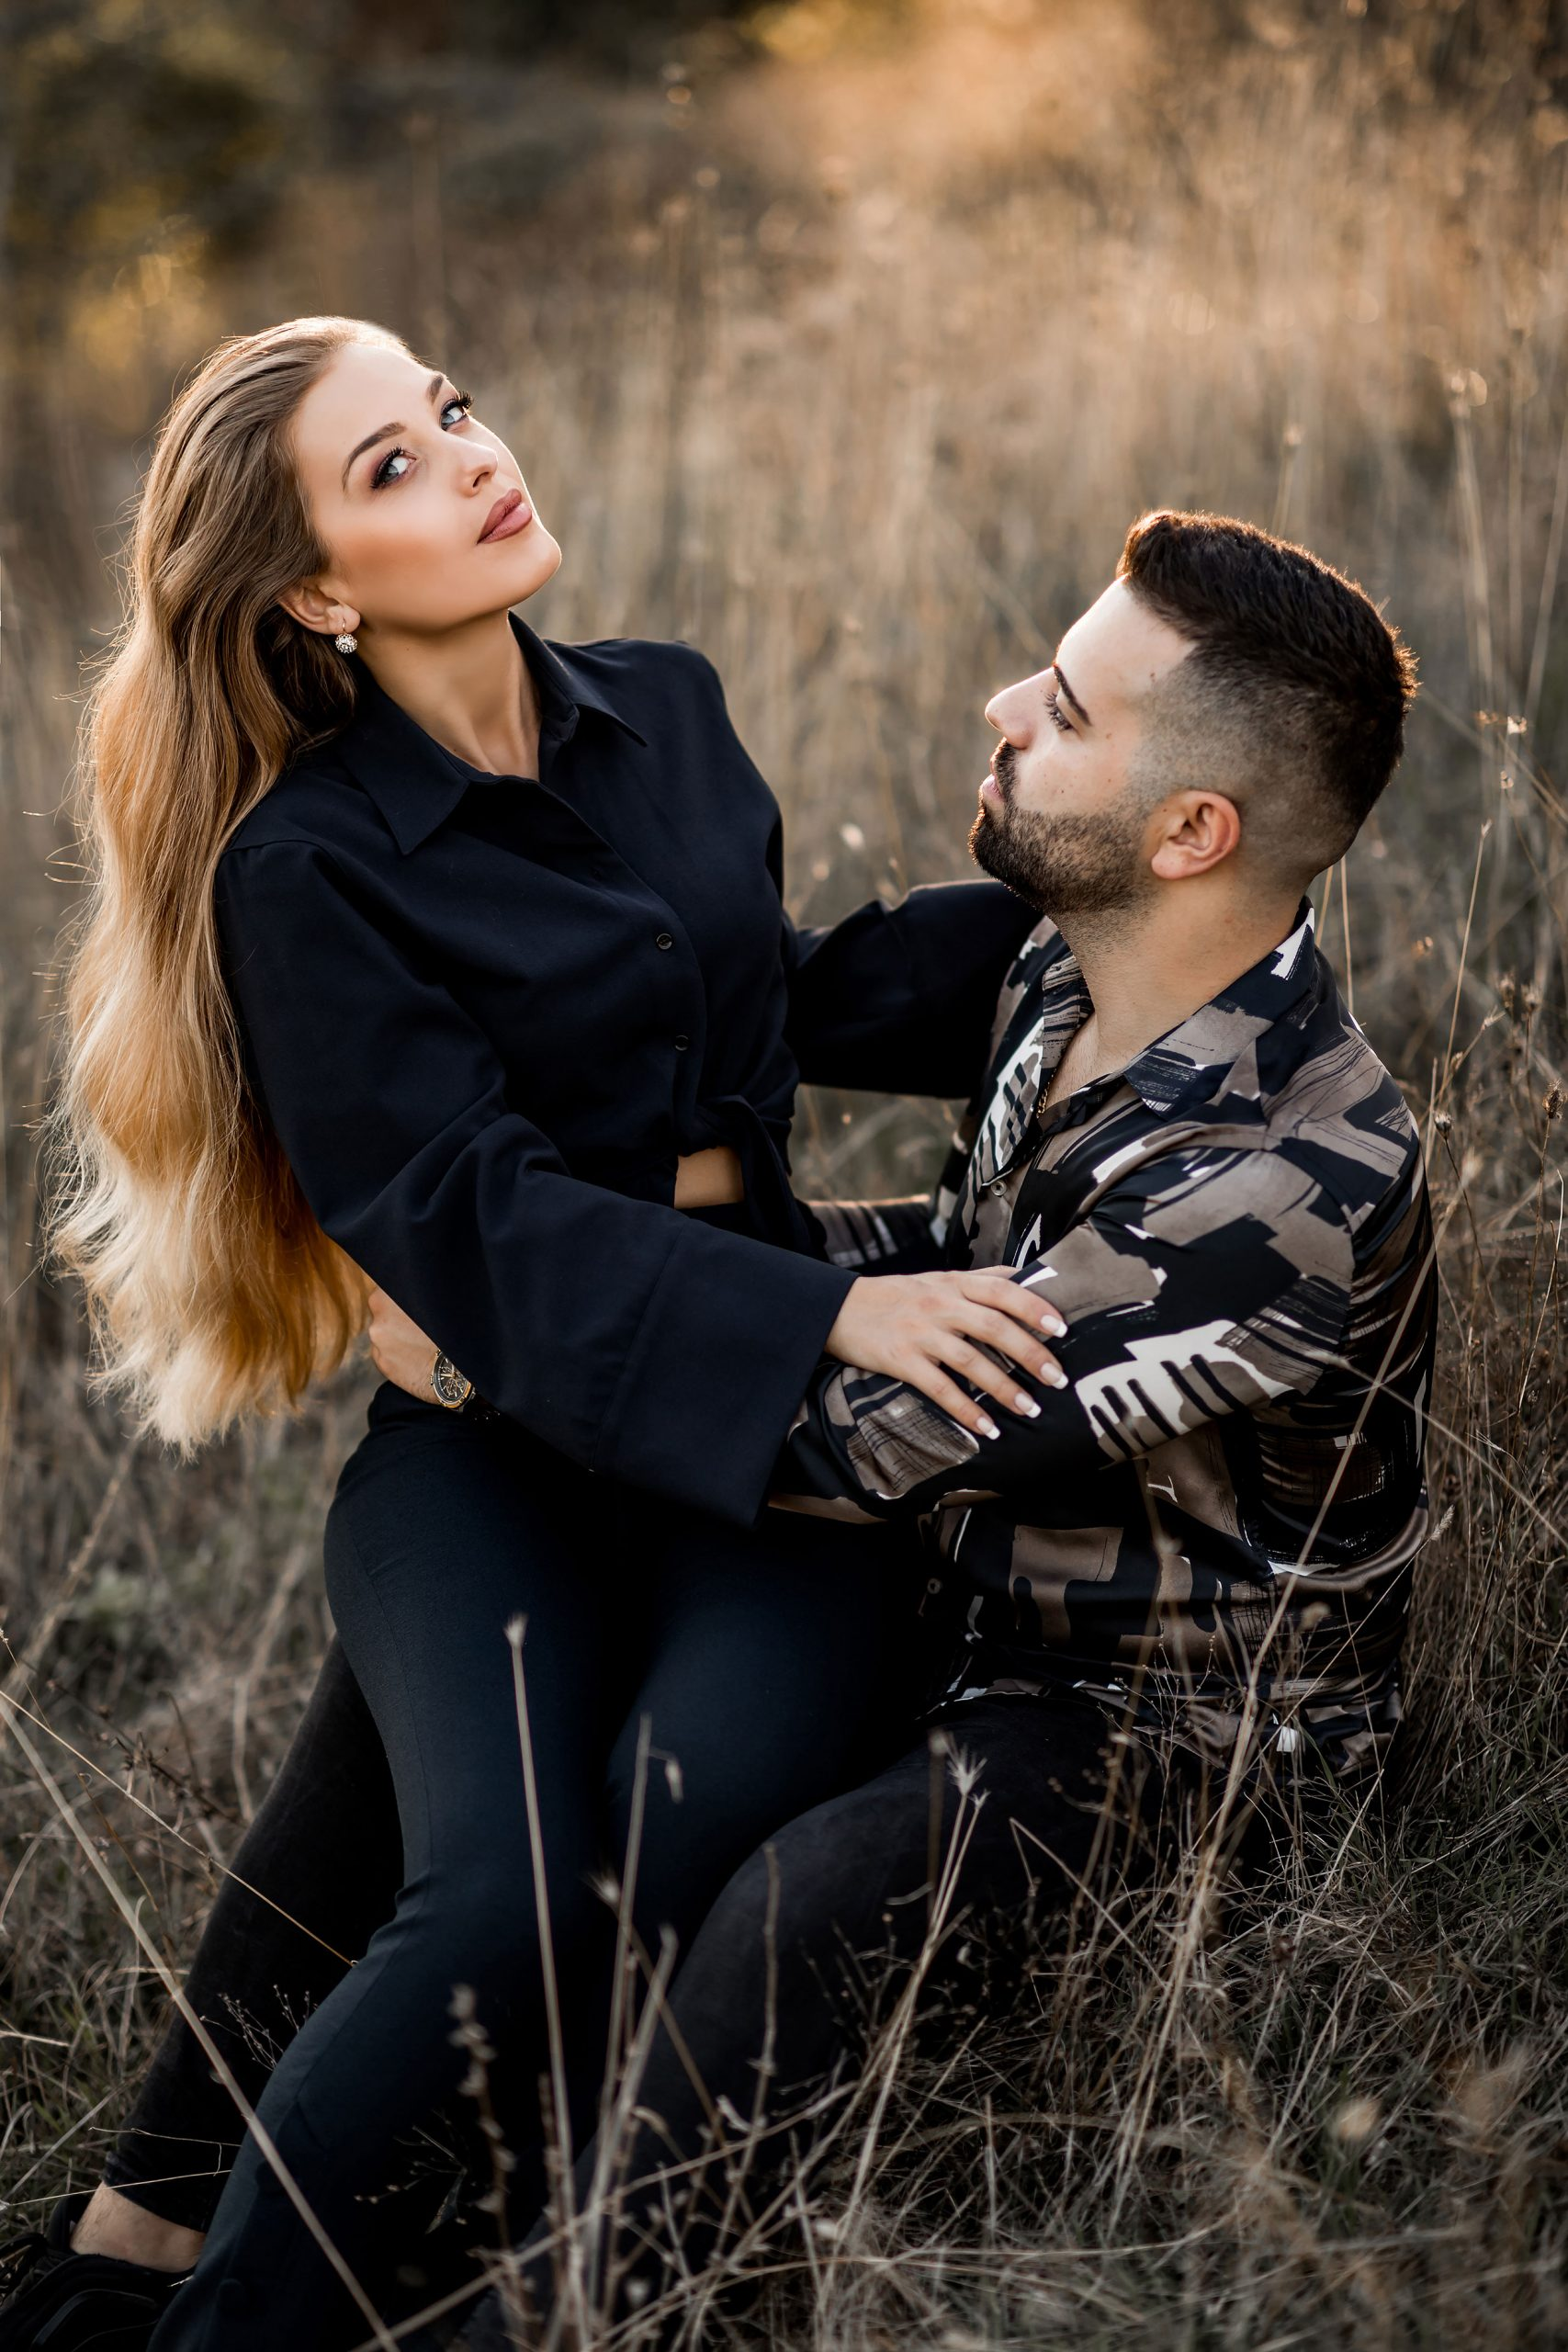 Nature photoshoot-Couples' edition